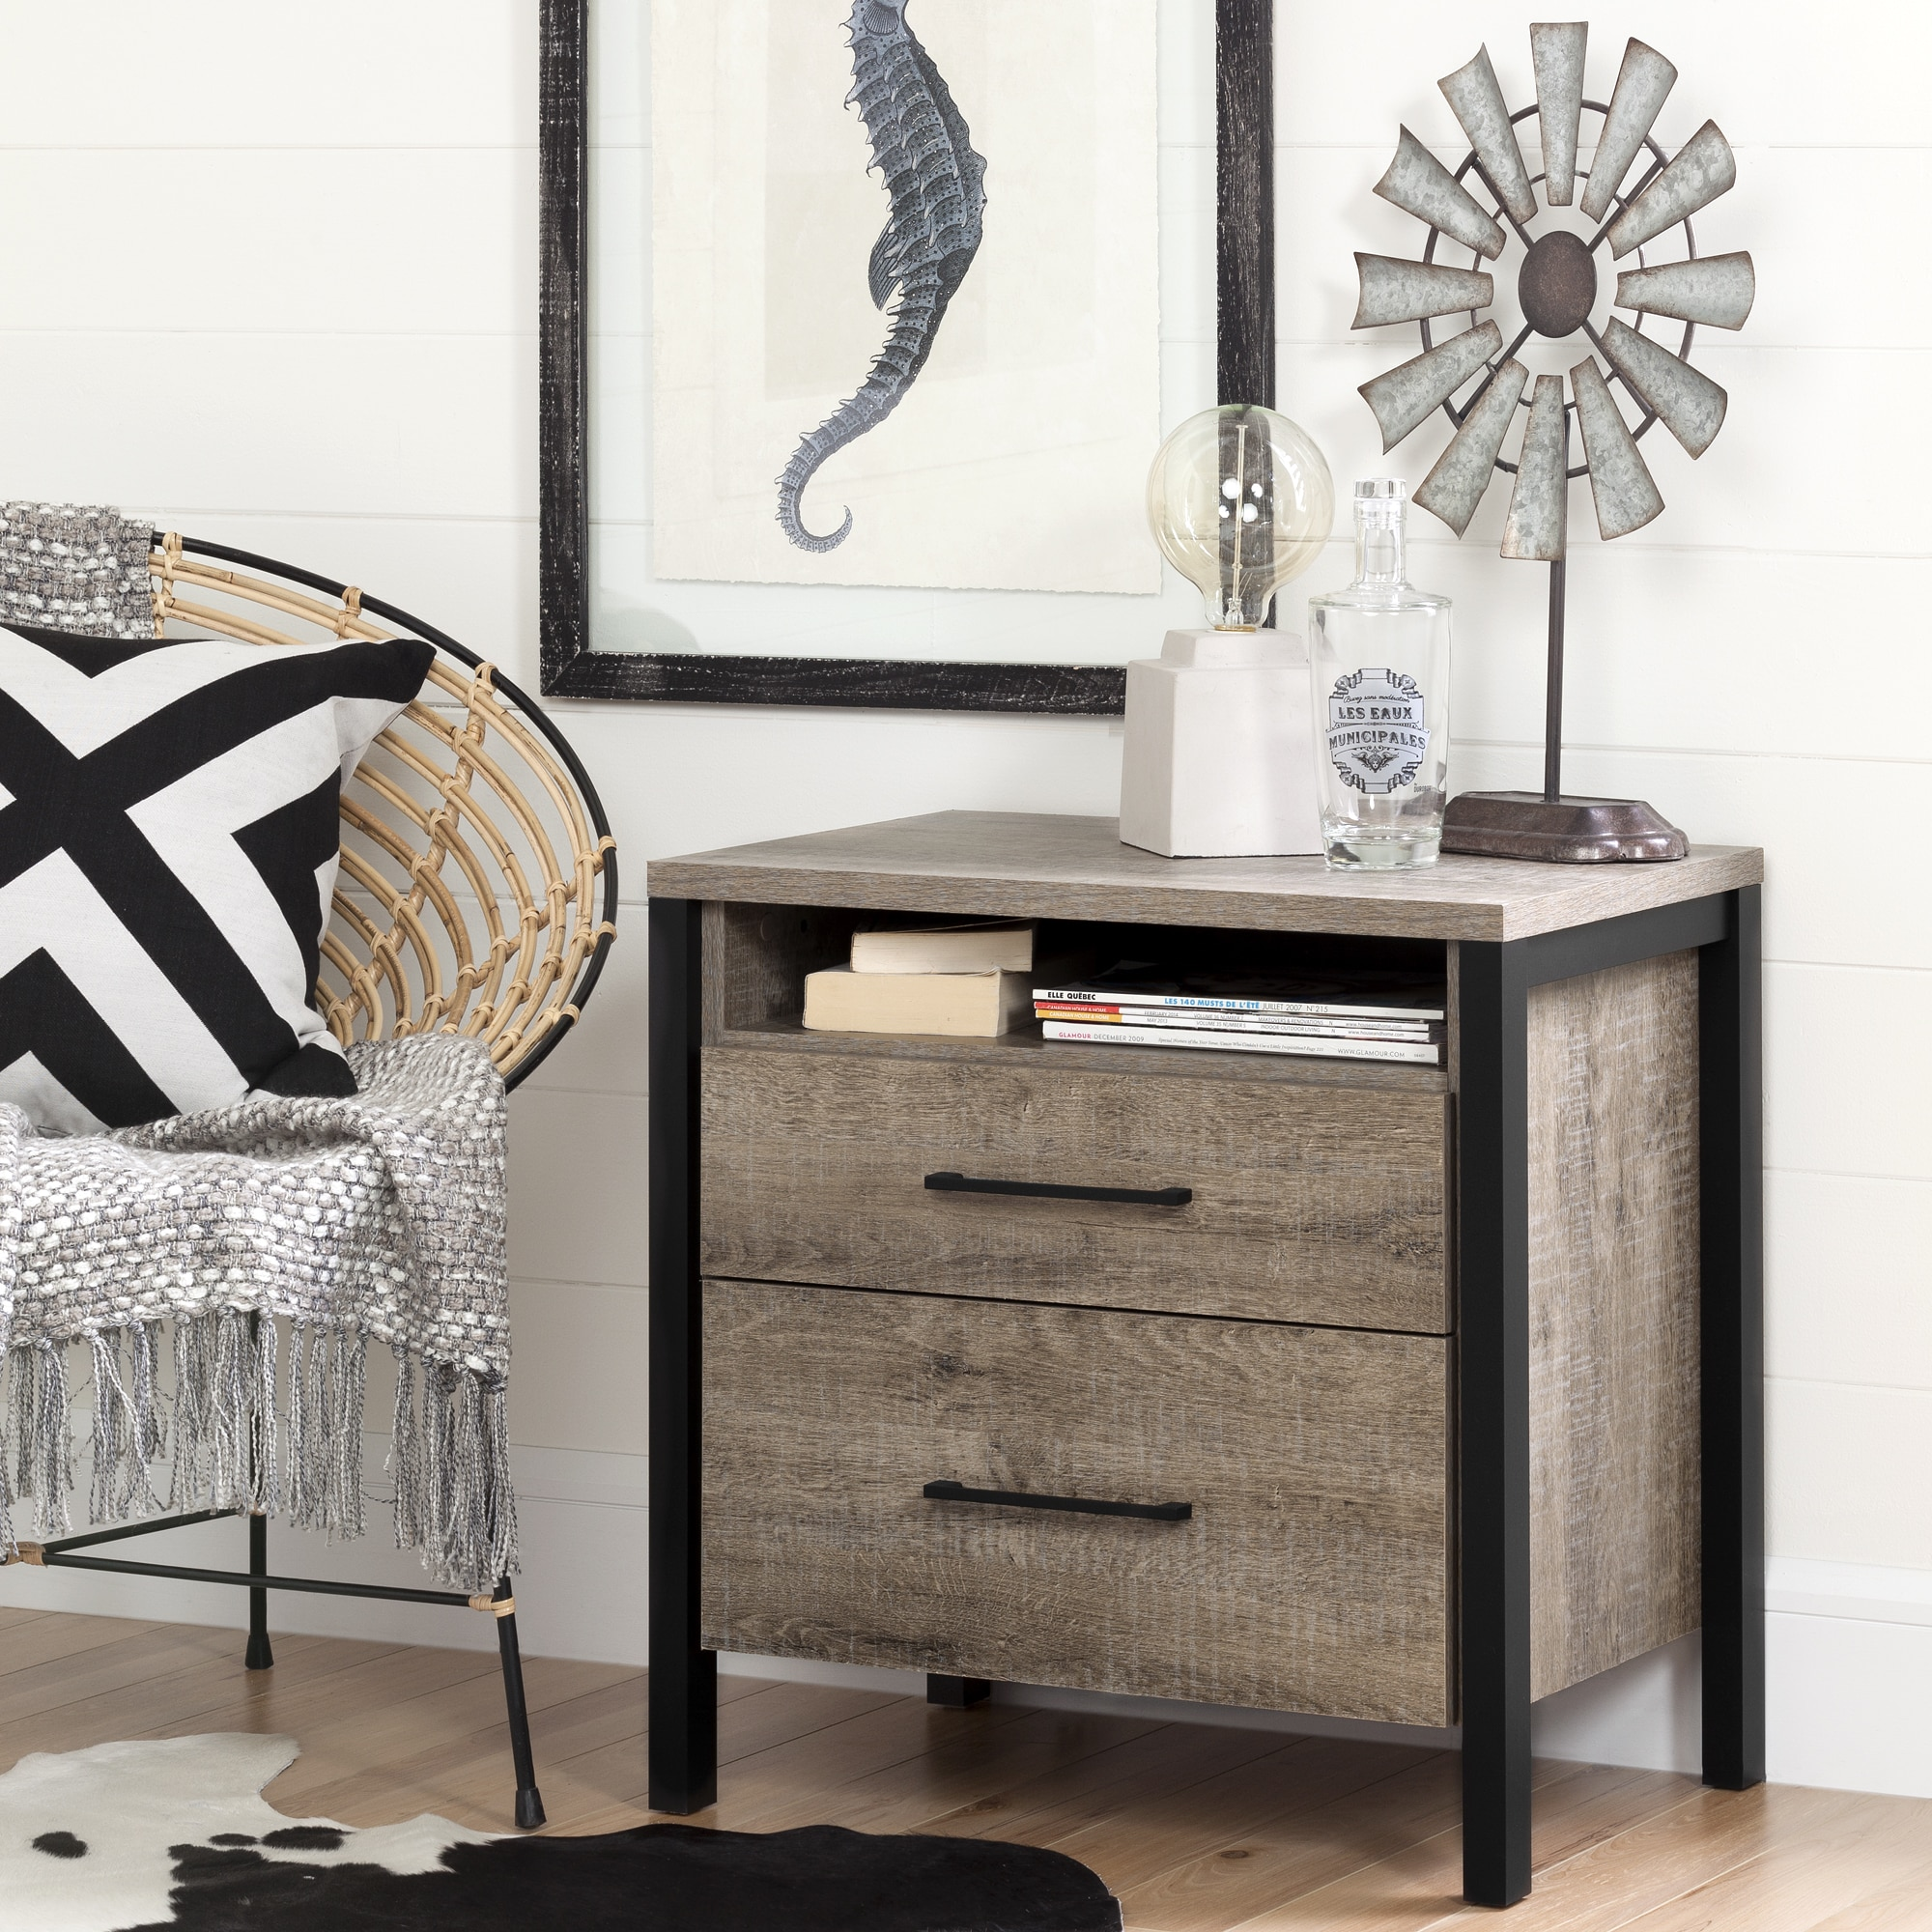 night stand table bedside end wood weathered oak drawer south shore munich laminate nightstan bedroom tables details about storage living room furniture spacing ethan allen